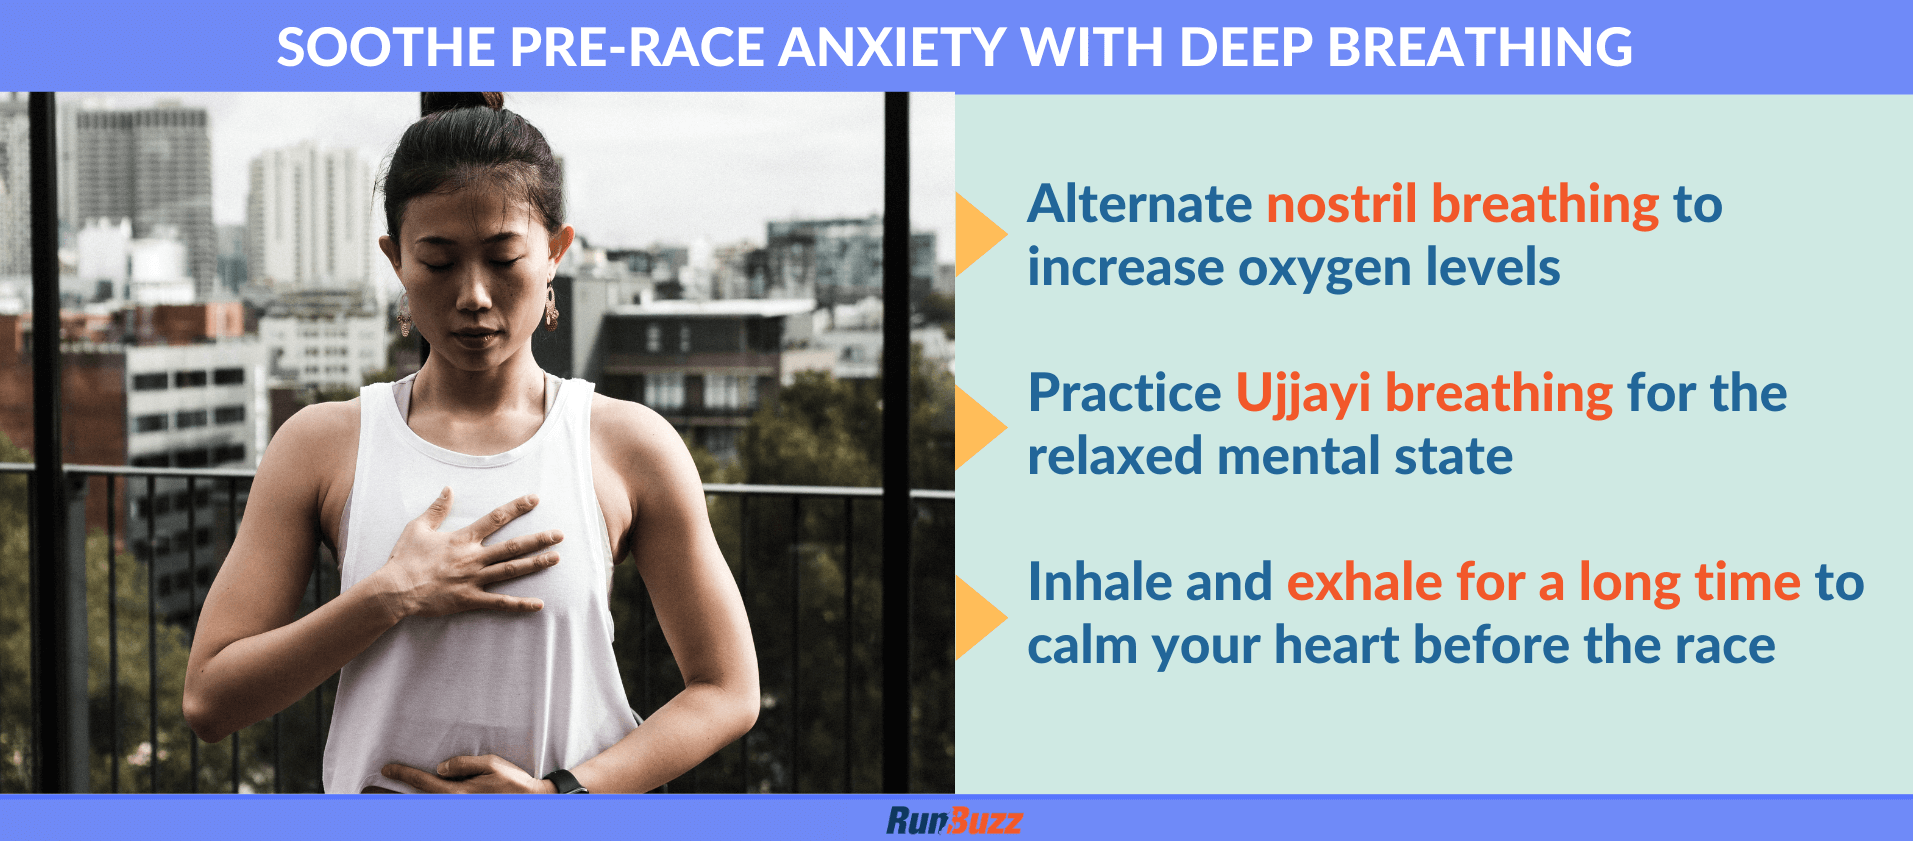 Soothe-pre-race-anxiety-with-deep-breathing